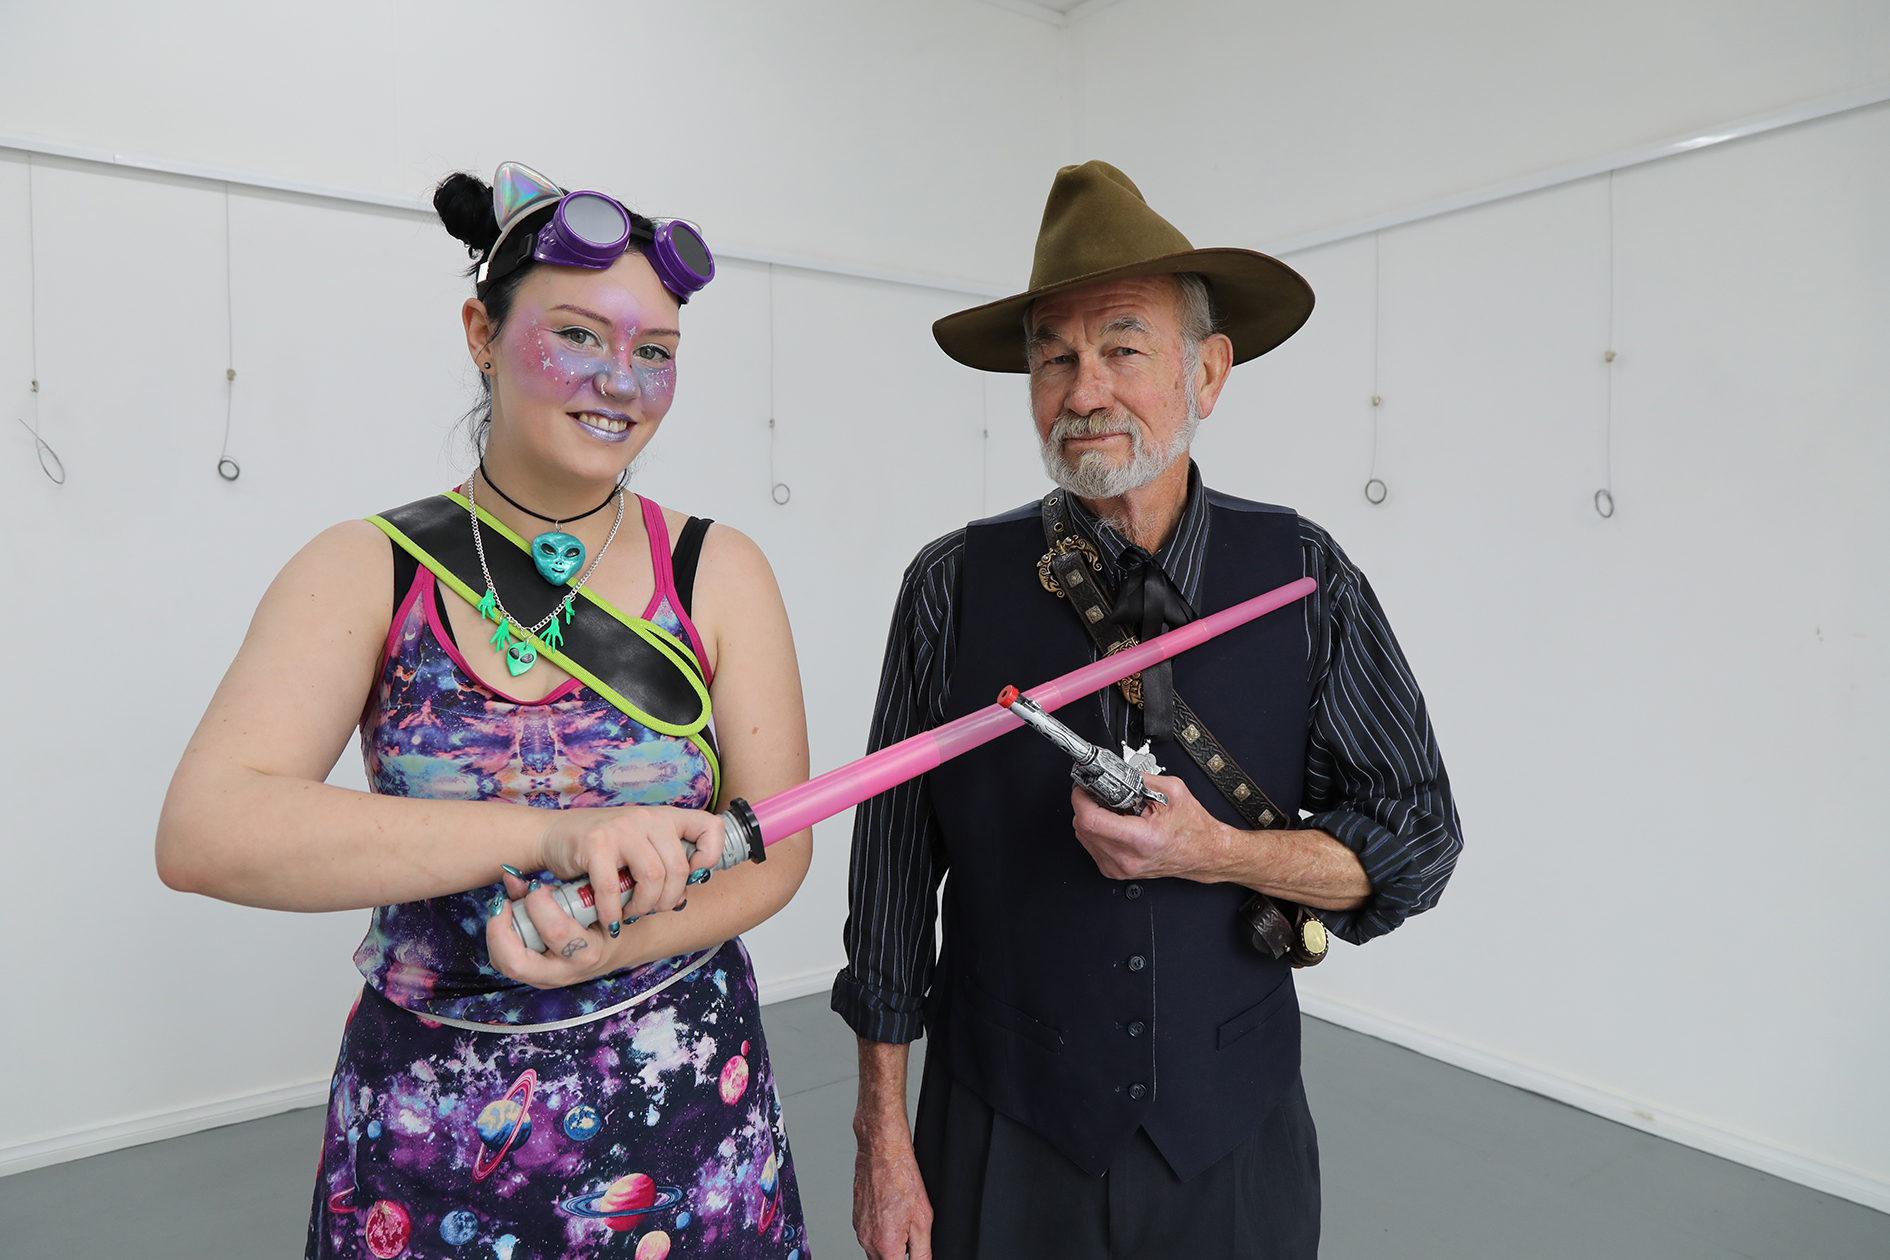 CJ Kilbride and Ken Bradford, both of Deloraine, showing off their martial skills in anticipation of this year's Space Western showdown.  Photo by Mike Moores